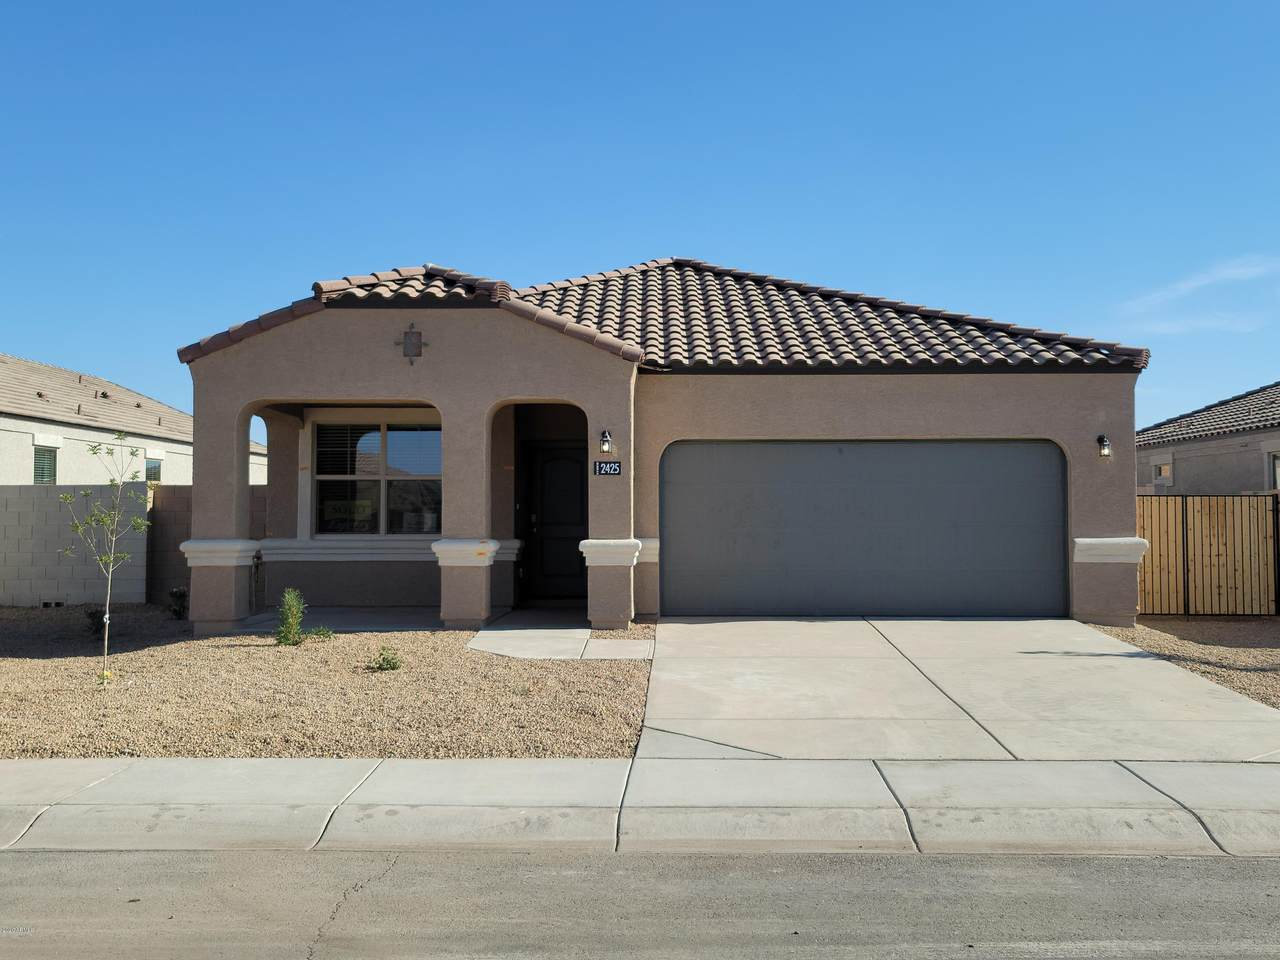 2425 San Borja Trail - Photo 1